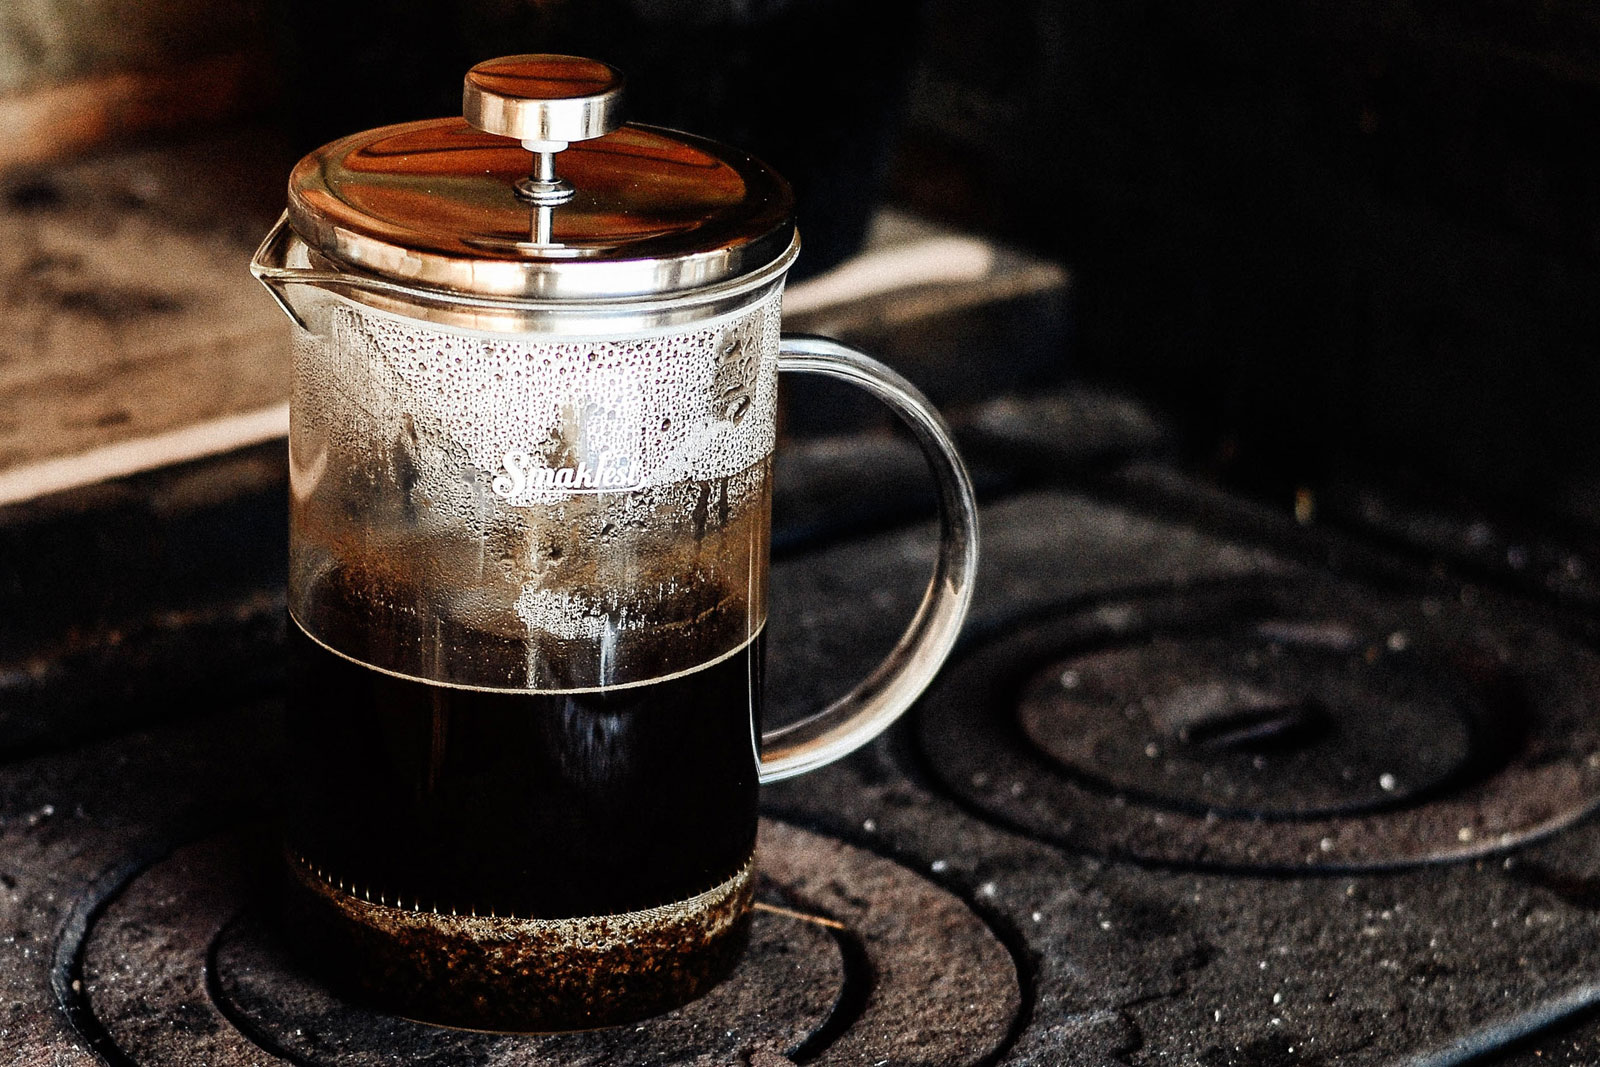 Let's Brew a Delicious Coffee with a French Press